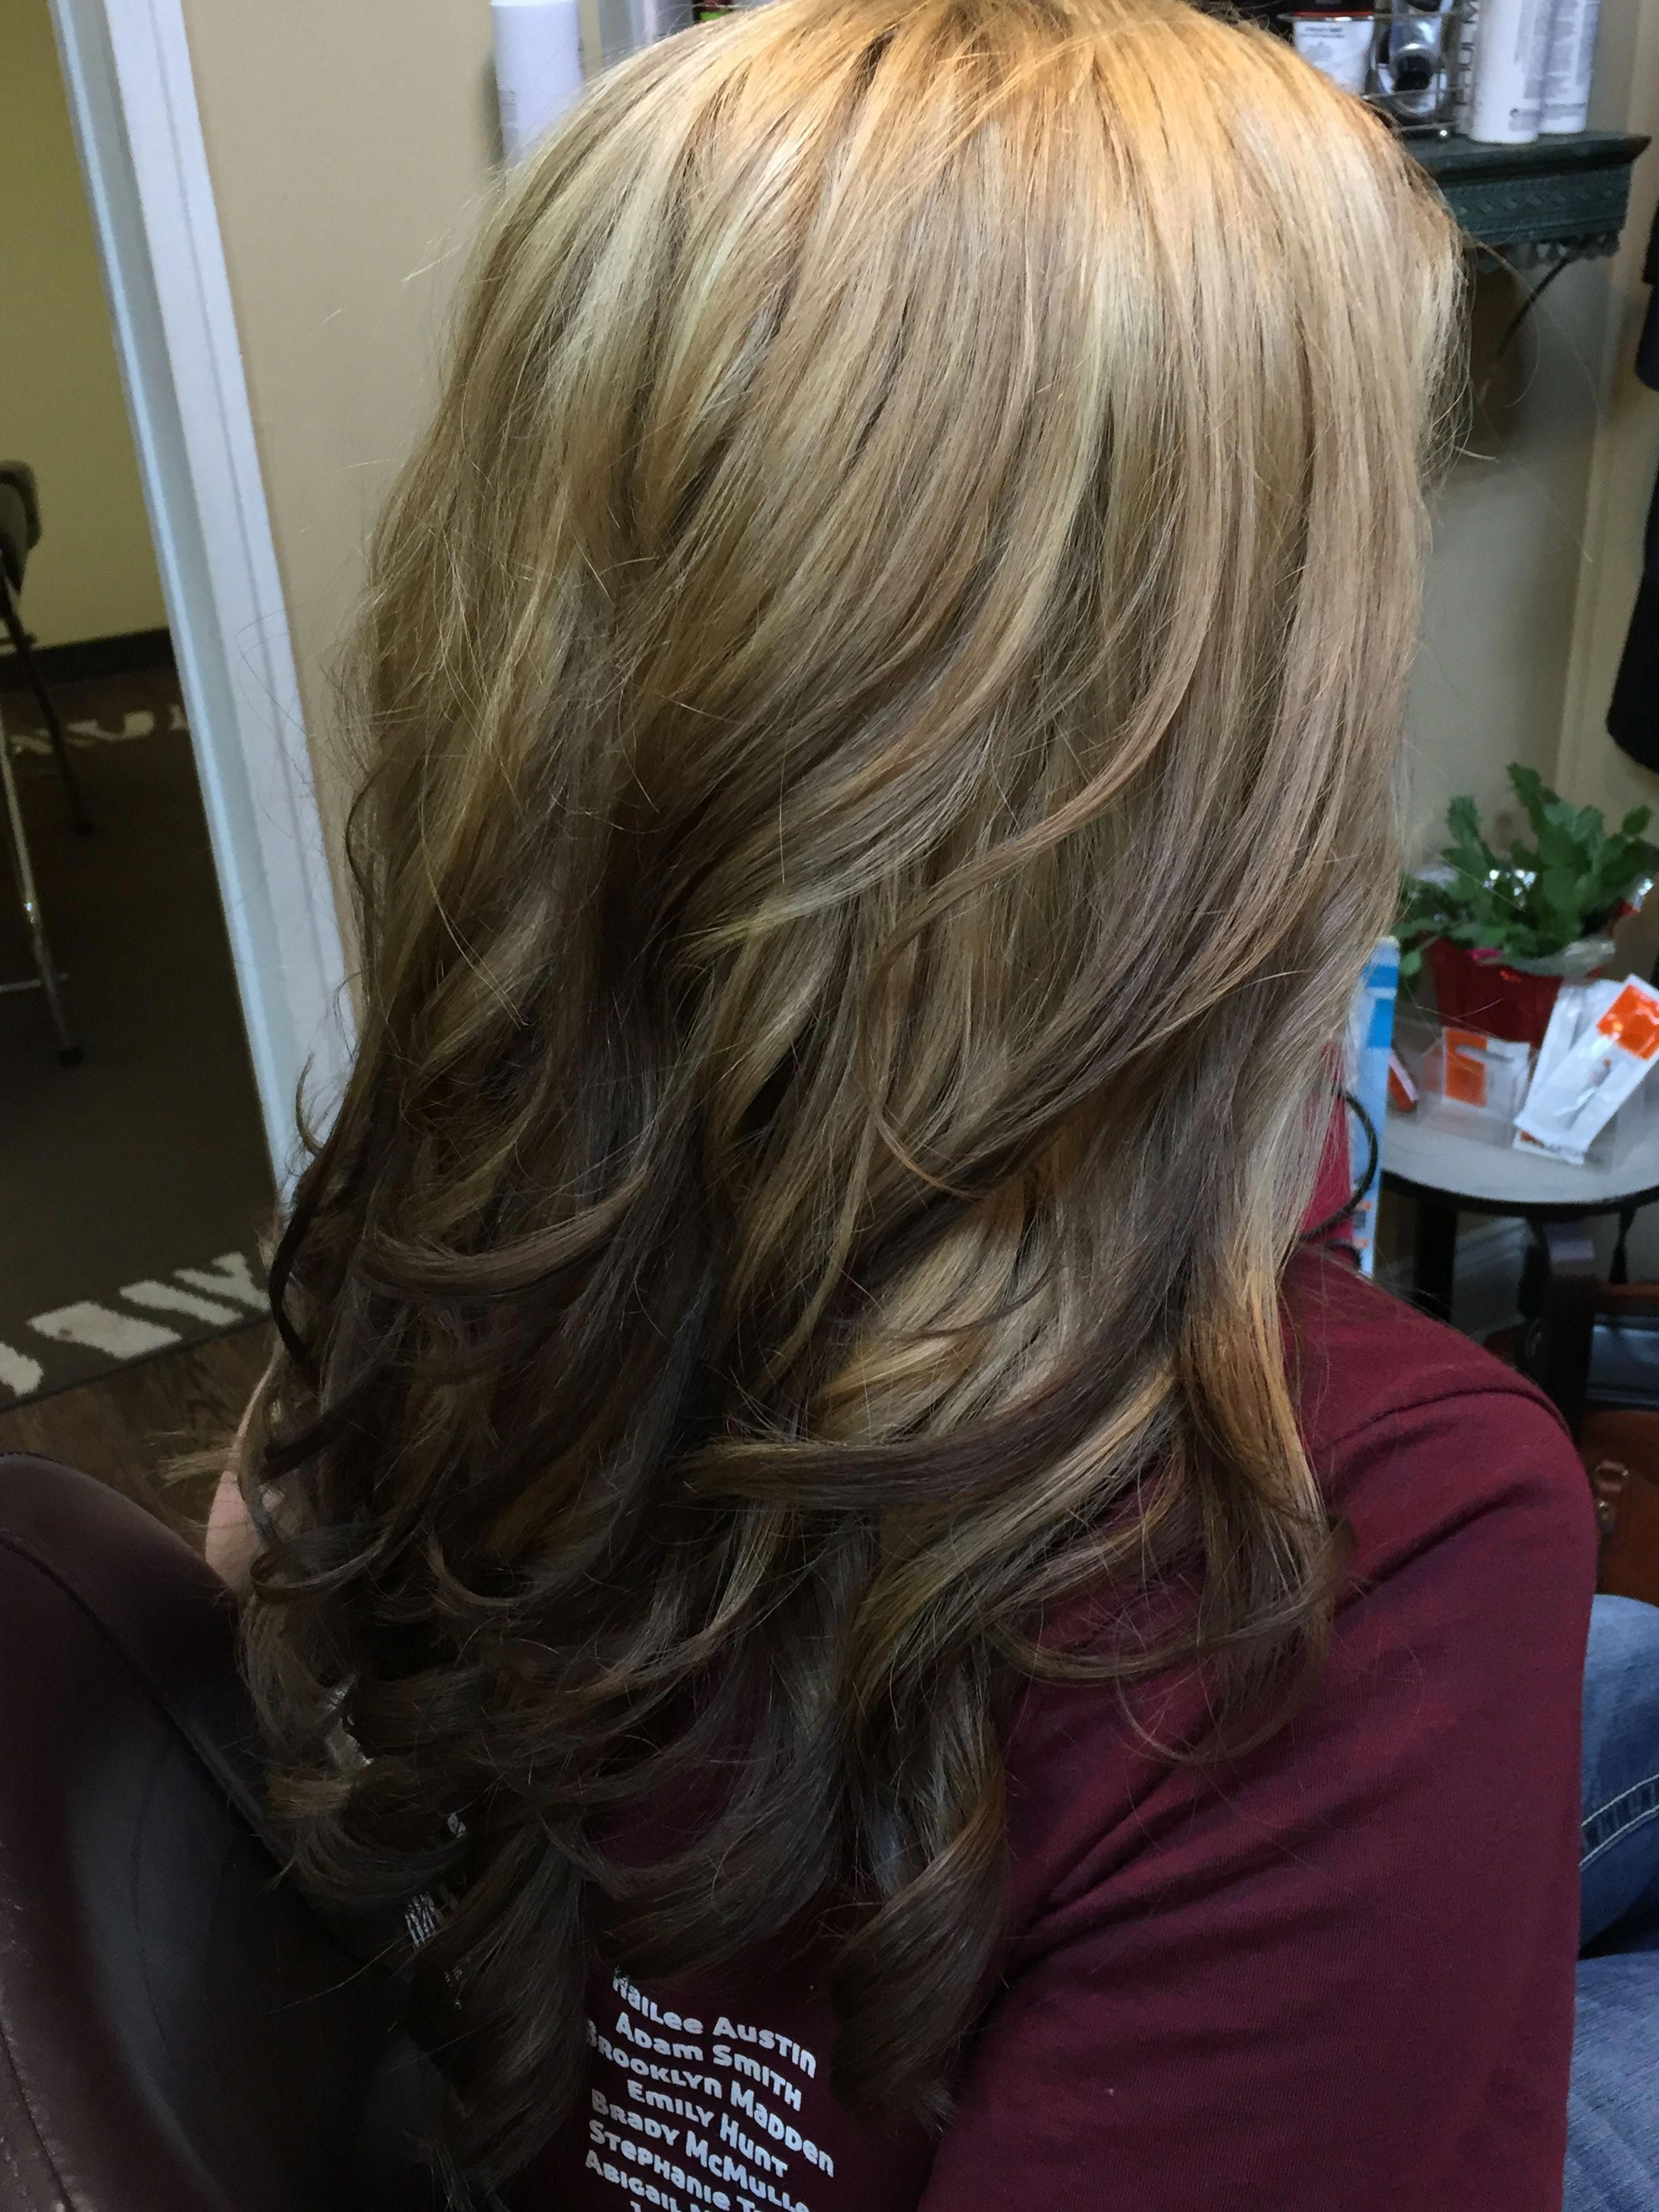 63 Stunning Examples Of Brown Ombre Hair With Images Dark Ombre Hair Ombre Hair Blonde Hair Styles